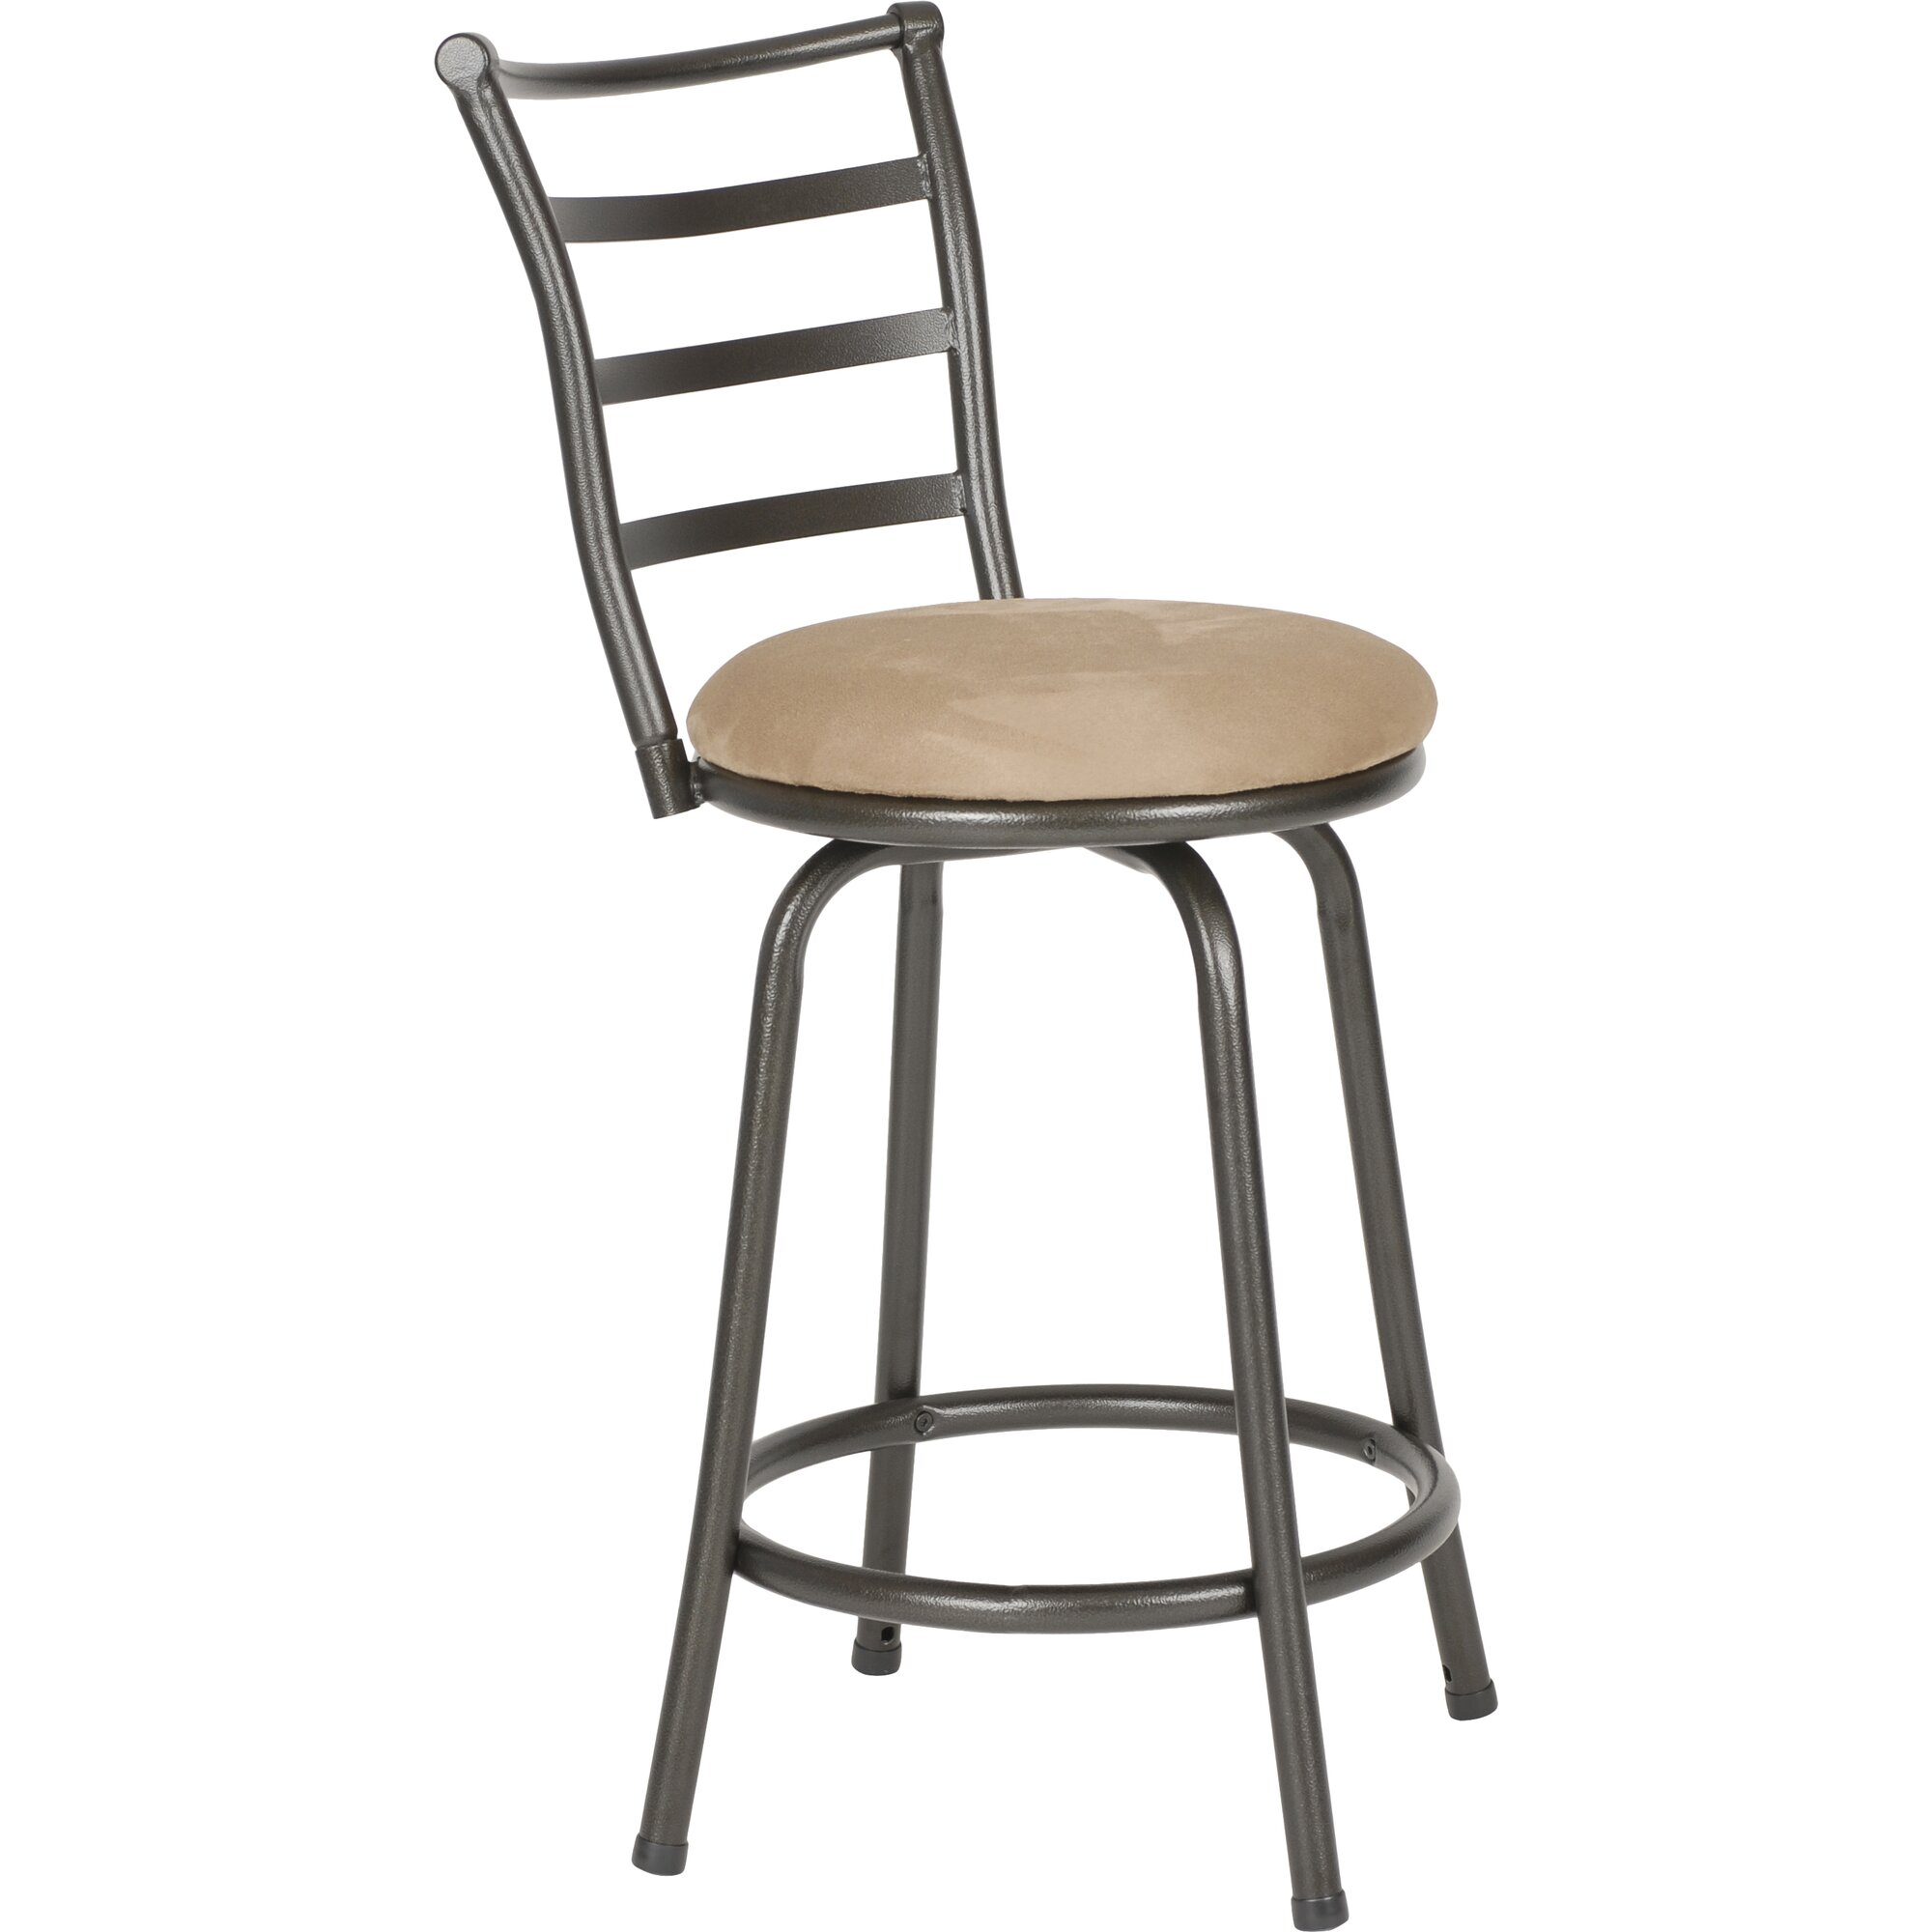 Adjustable Bar Stools | Wayfair